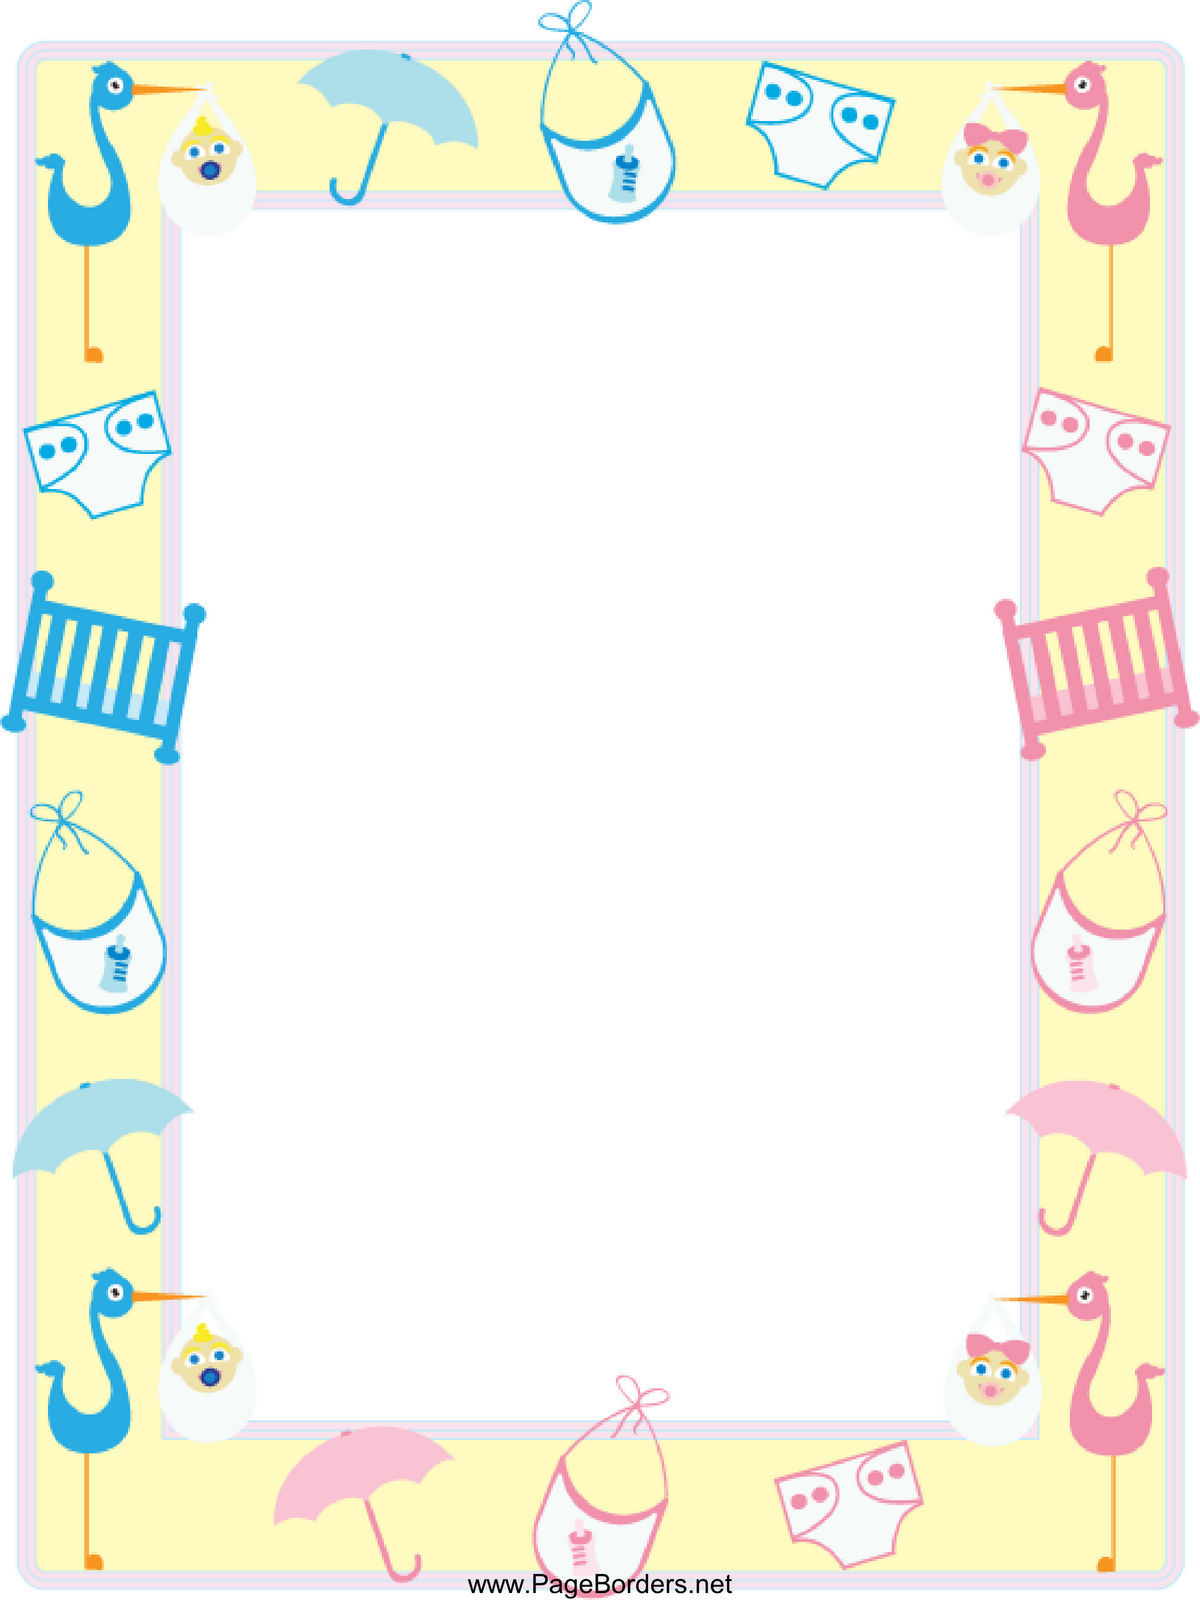 Baby Borders Free Cliparts That You Can -Baby Borders Free Cliparts That You Can Download To You Computer And-2